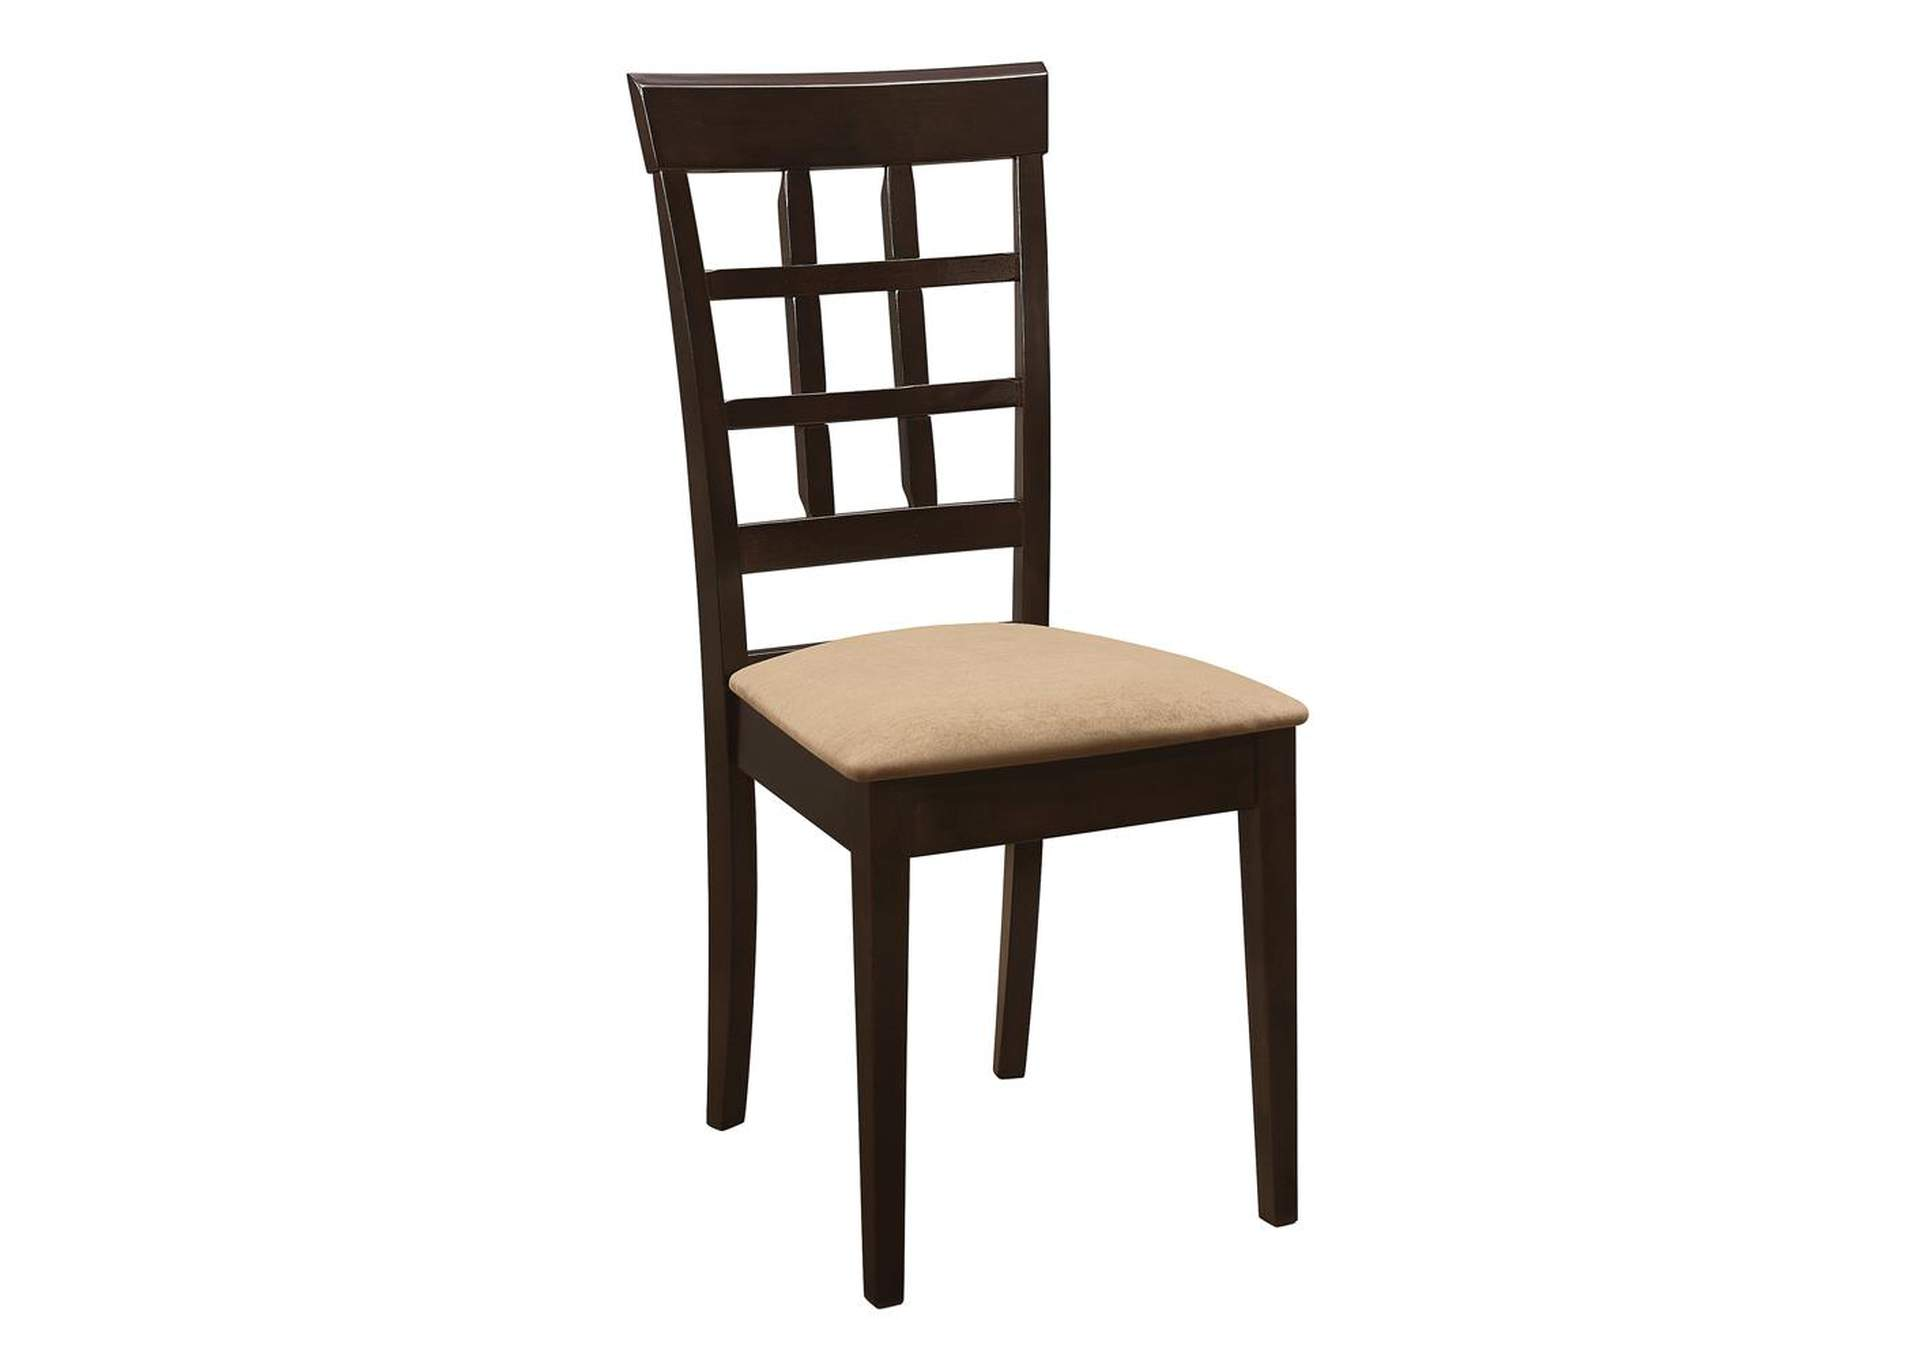 Cappuccino Gabriel Cappuccino Side Dining Chair,Coaster Furniture